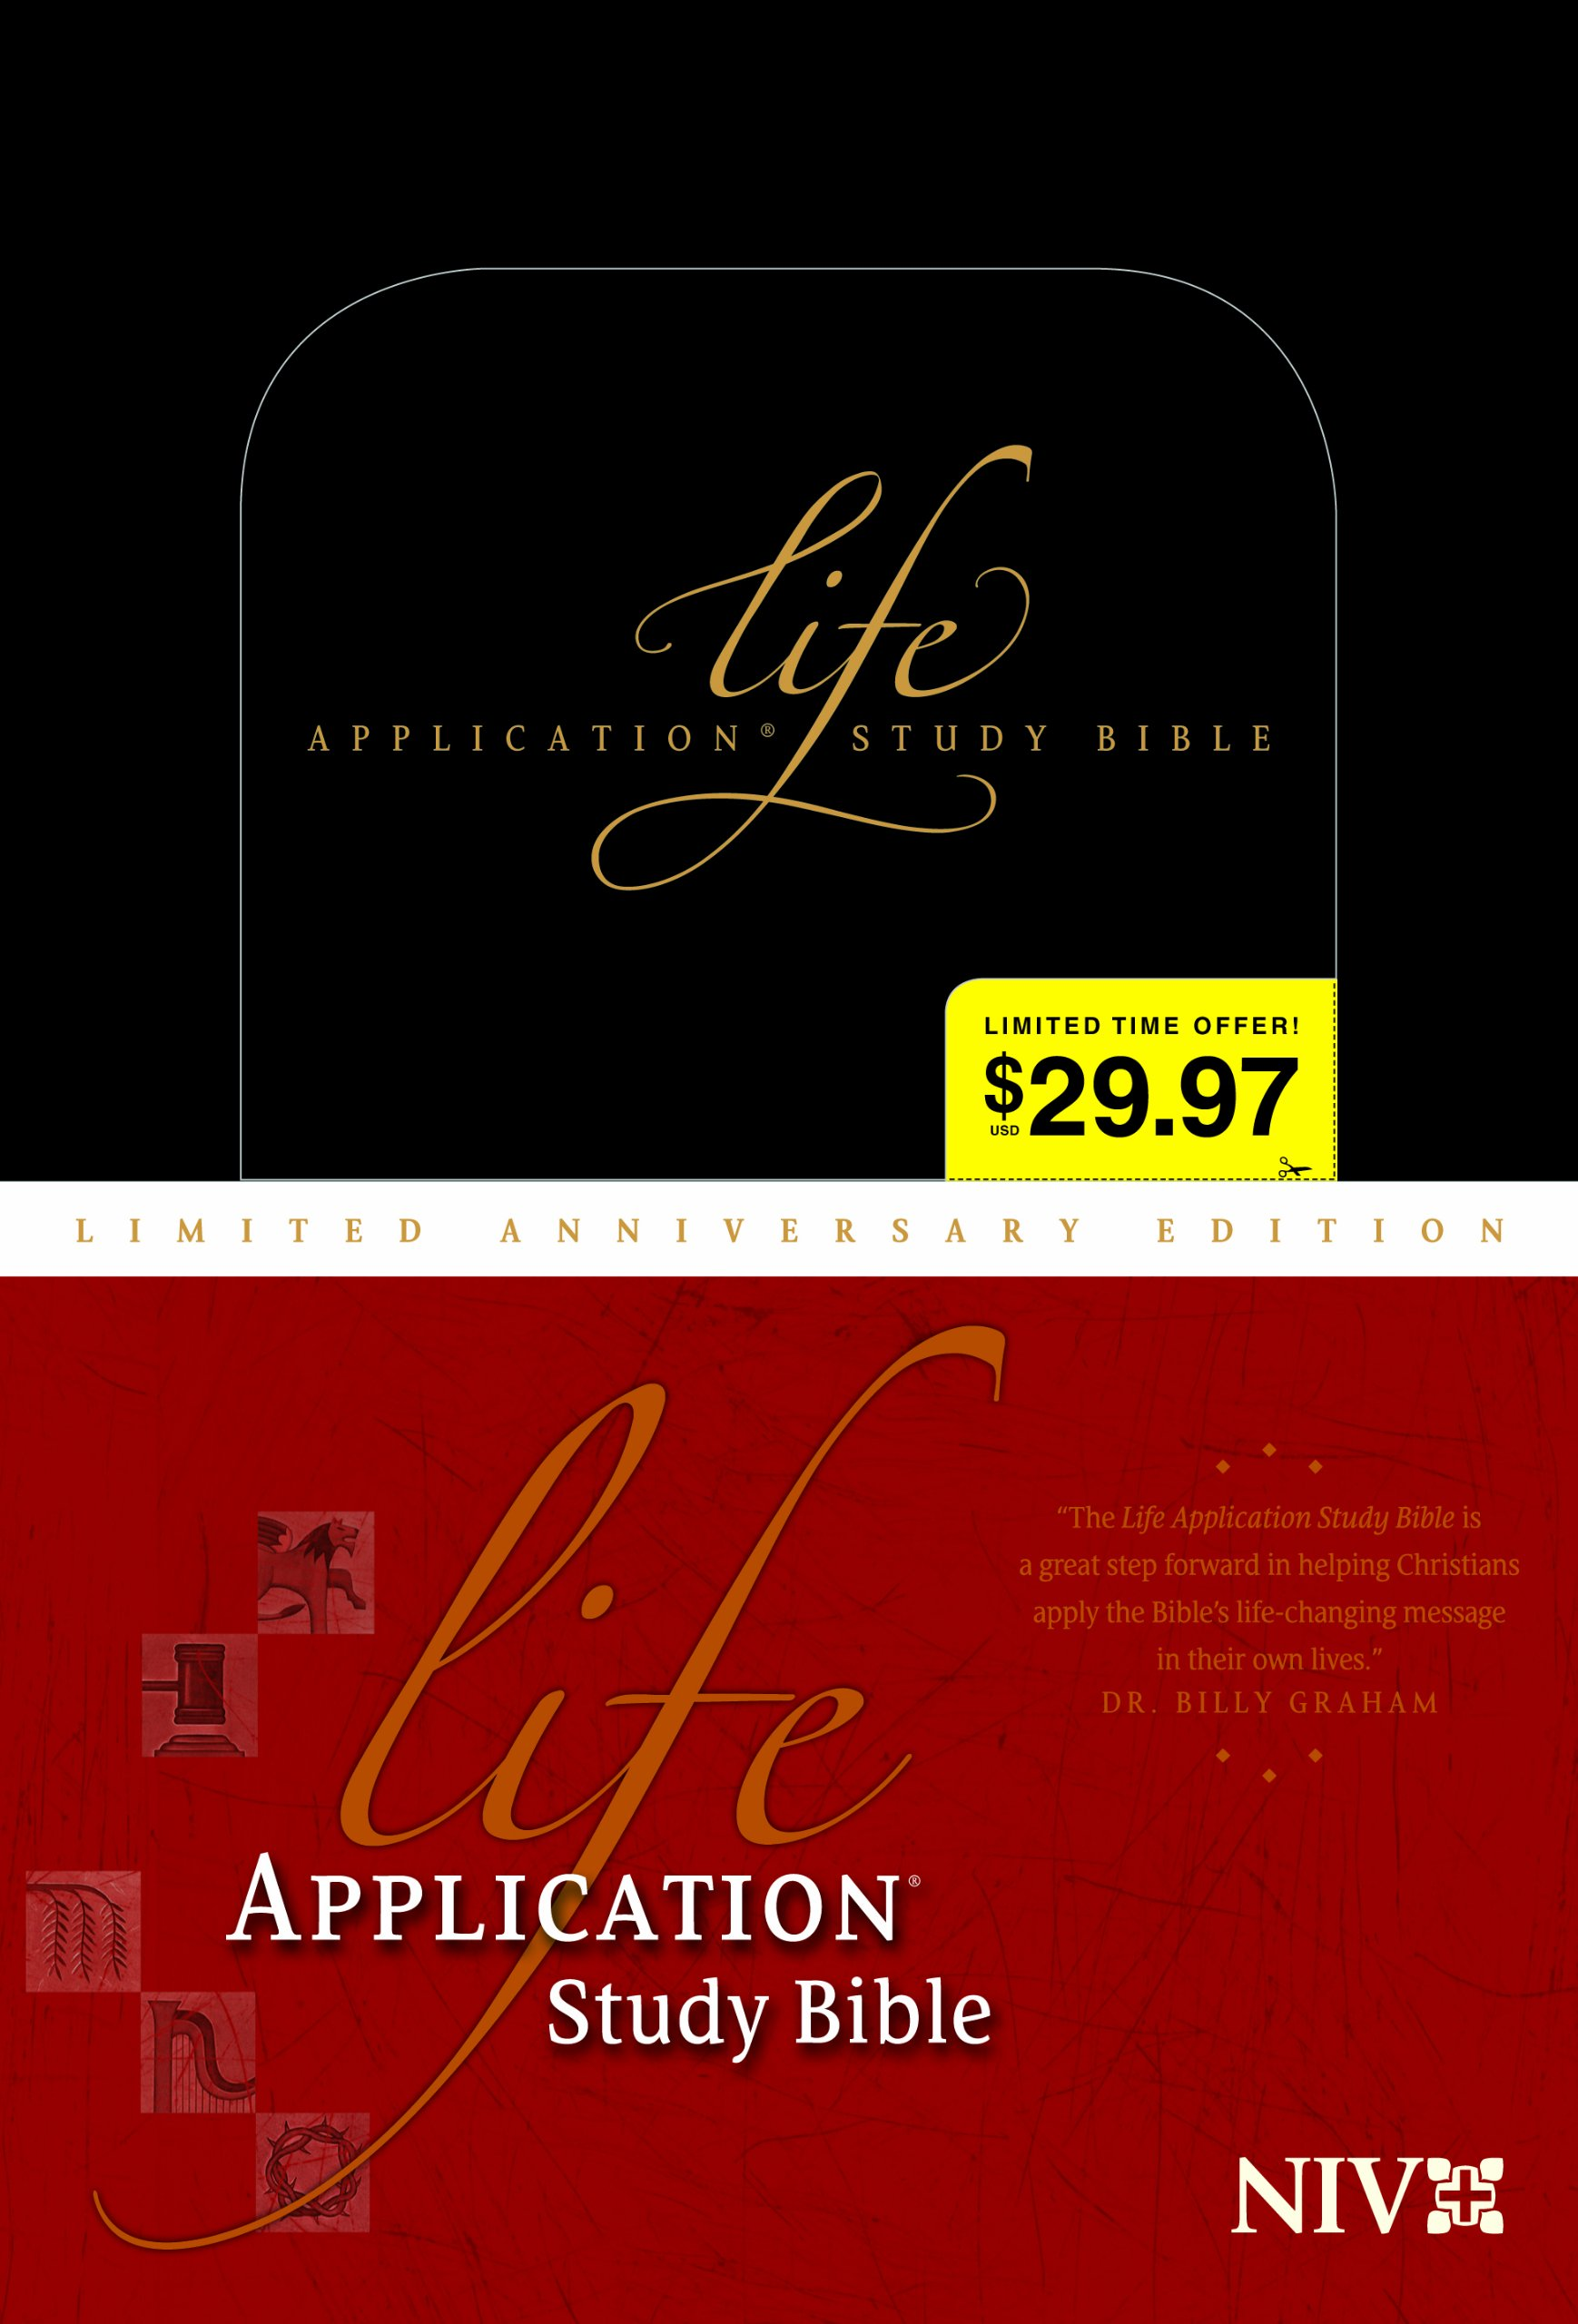 Read Online Life Application Study Bible NIV, Limited Anniversary Edition pdf